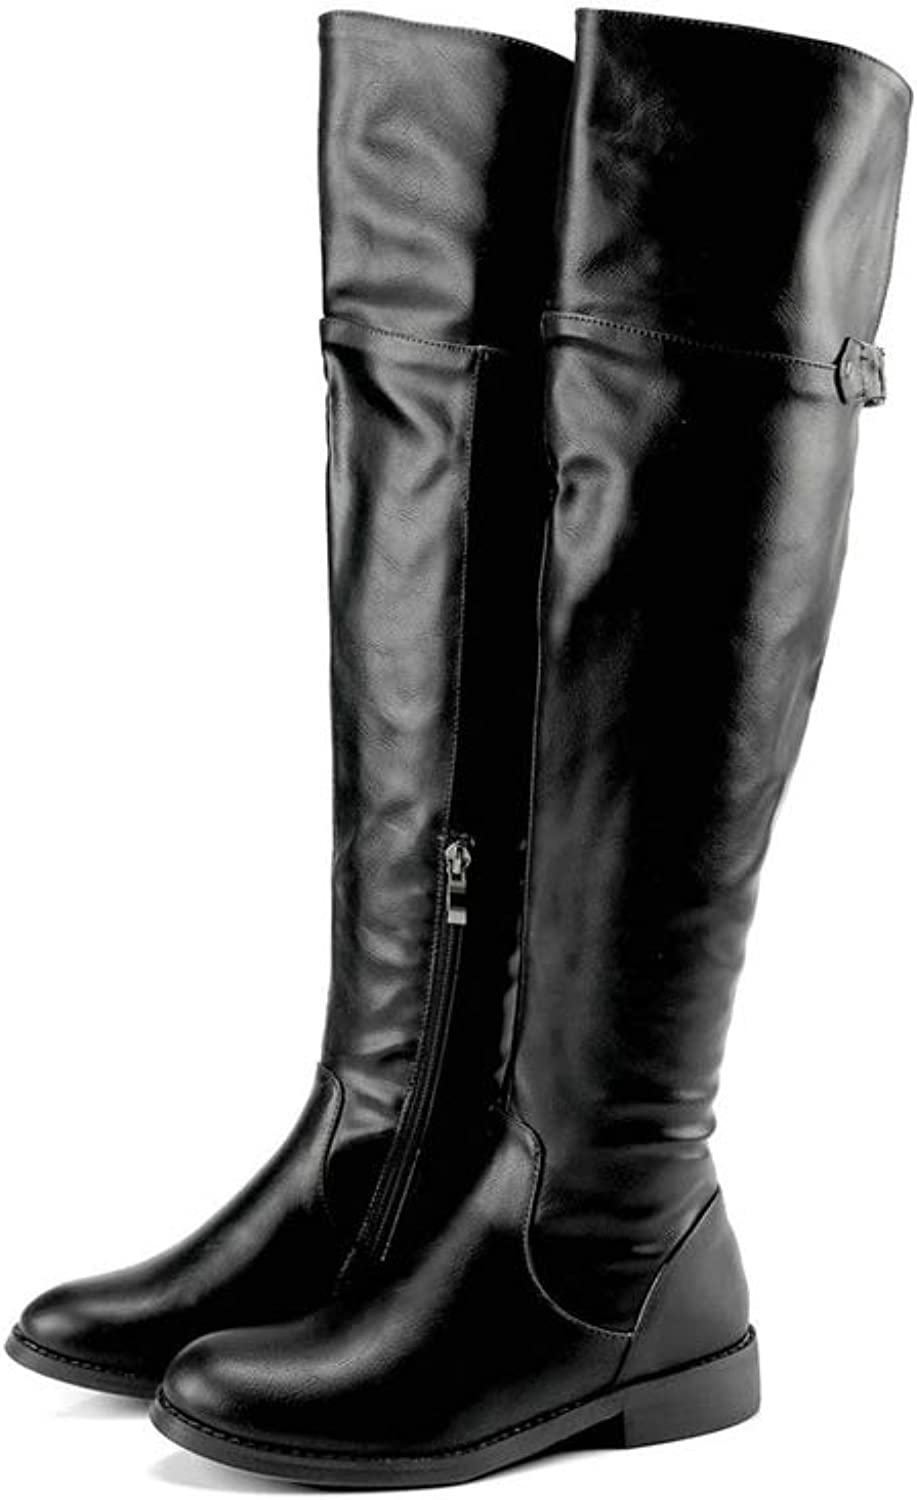 Women Boots Zipper Round Toe Knee-high Boots Square Low Heels Western Style Thigh High Riding Booties